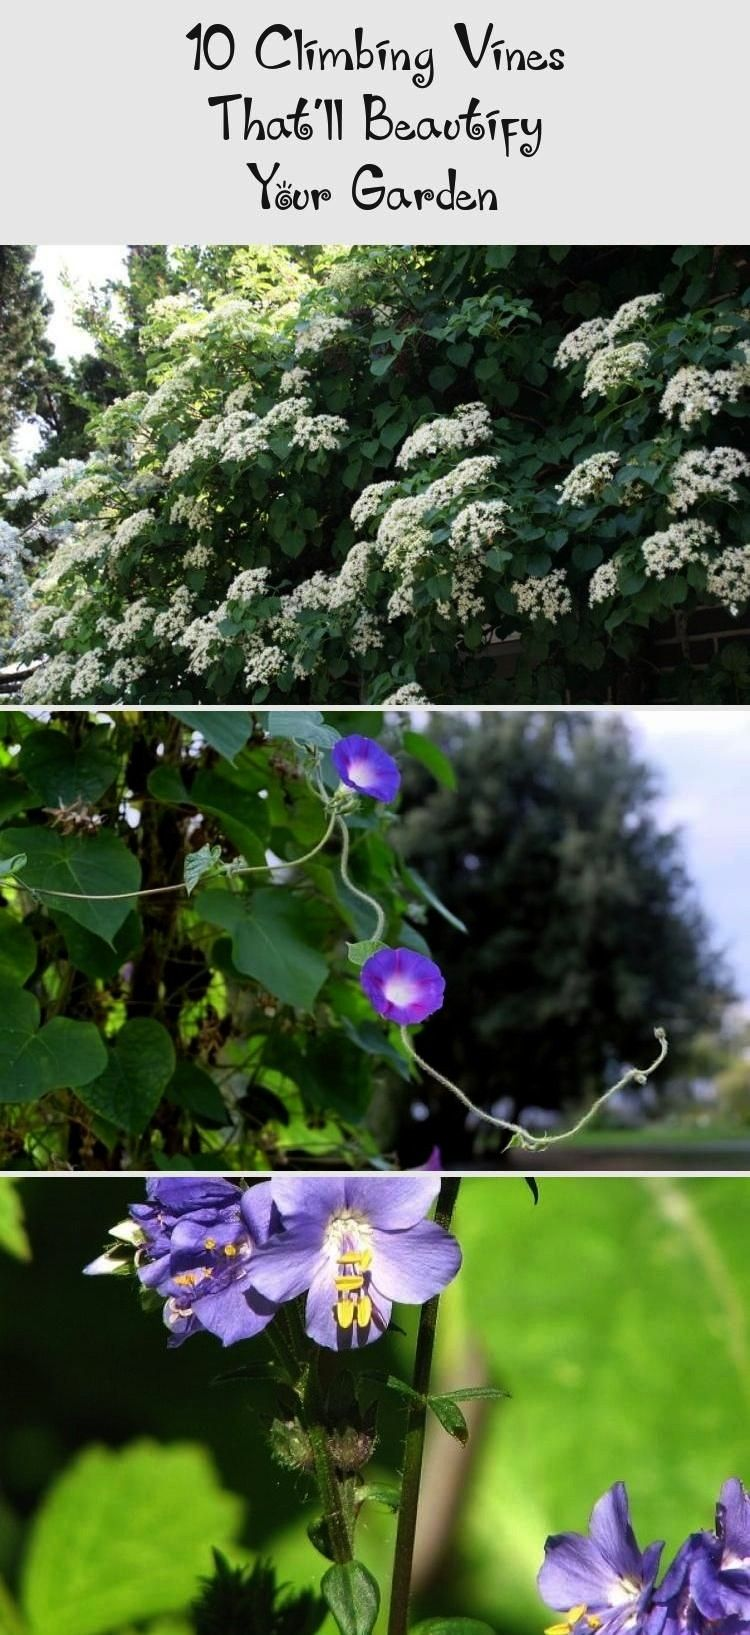 Climbing Vines Thatll Beautify Your Garden10 Climbing Vines Thatll Beautify Your Garden How to Create a Level Lawn  Page 02  Outdoors  Home  Garden Television 5 More Must...